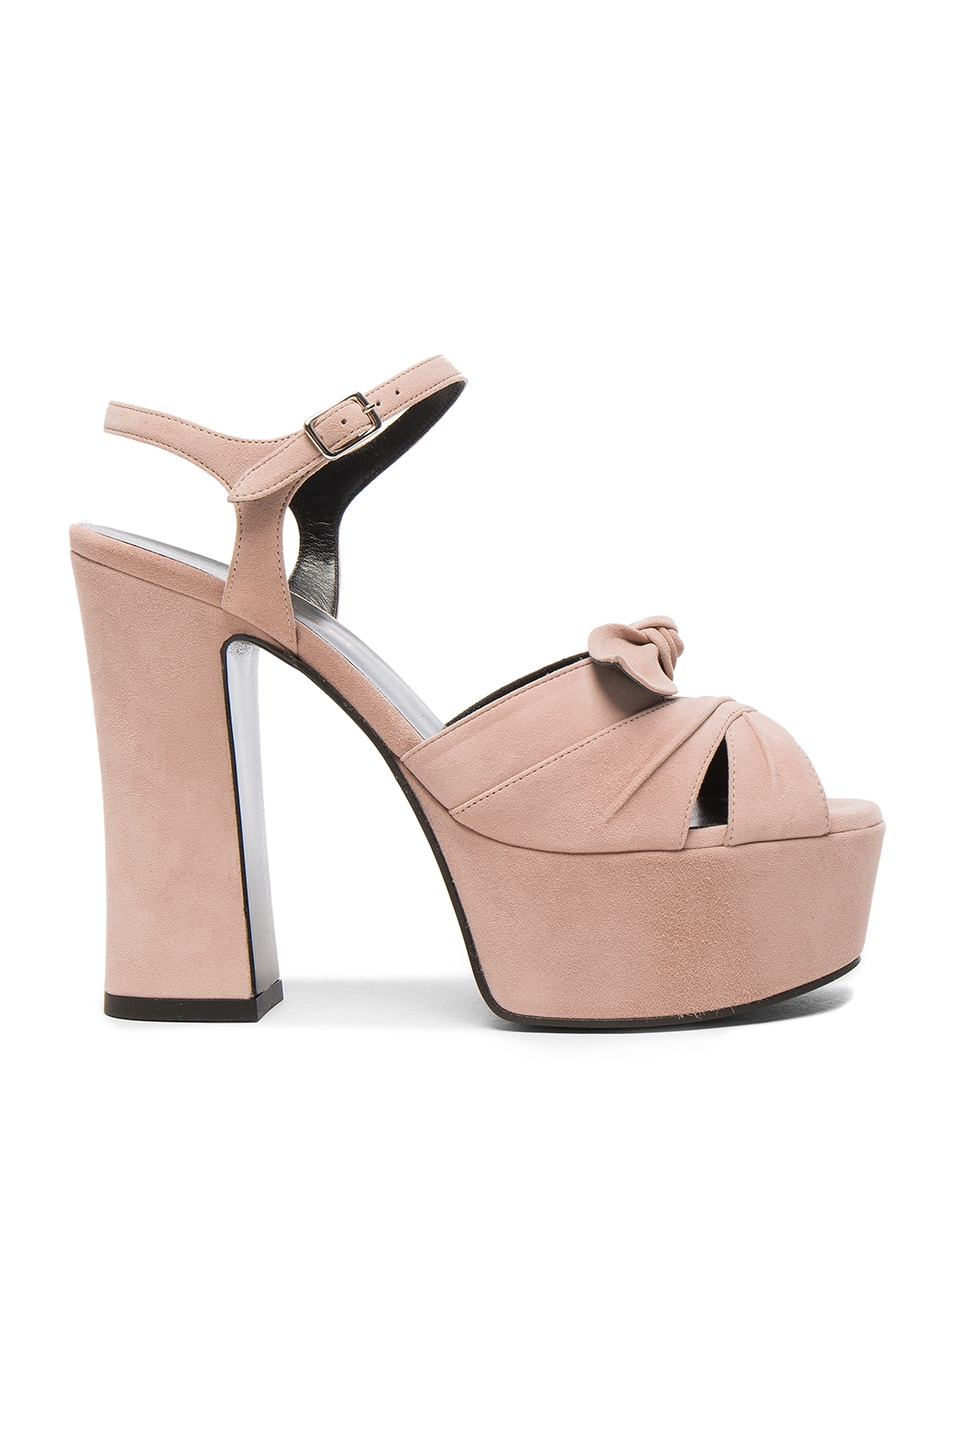 Image 1 of Saint Laurent Candy Suede Platforms in Rose Antic